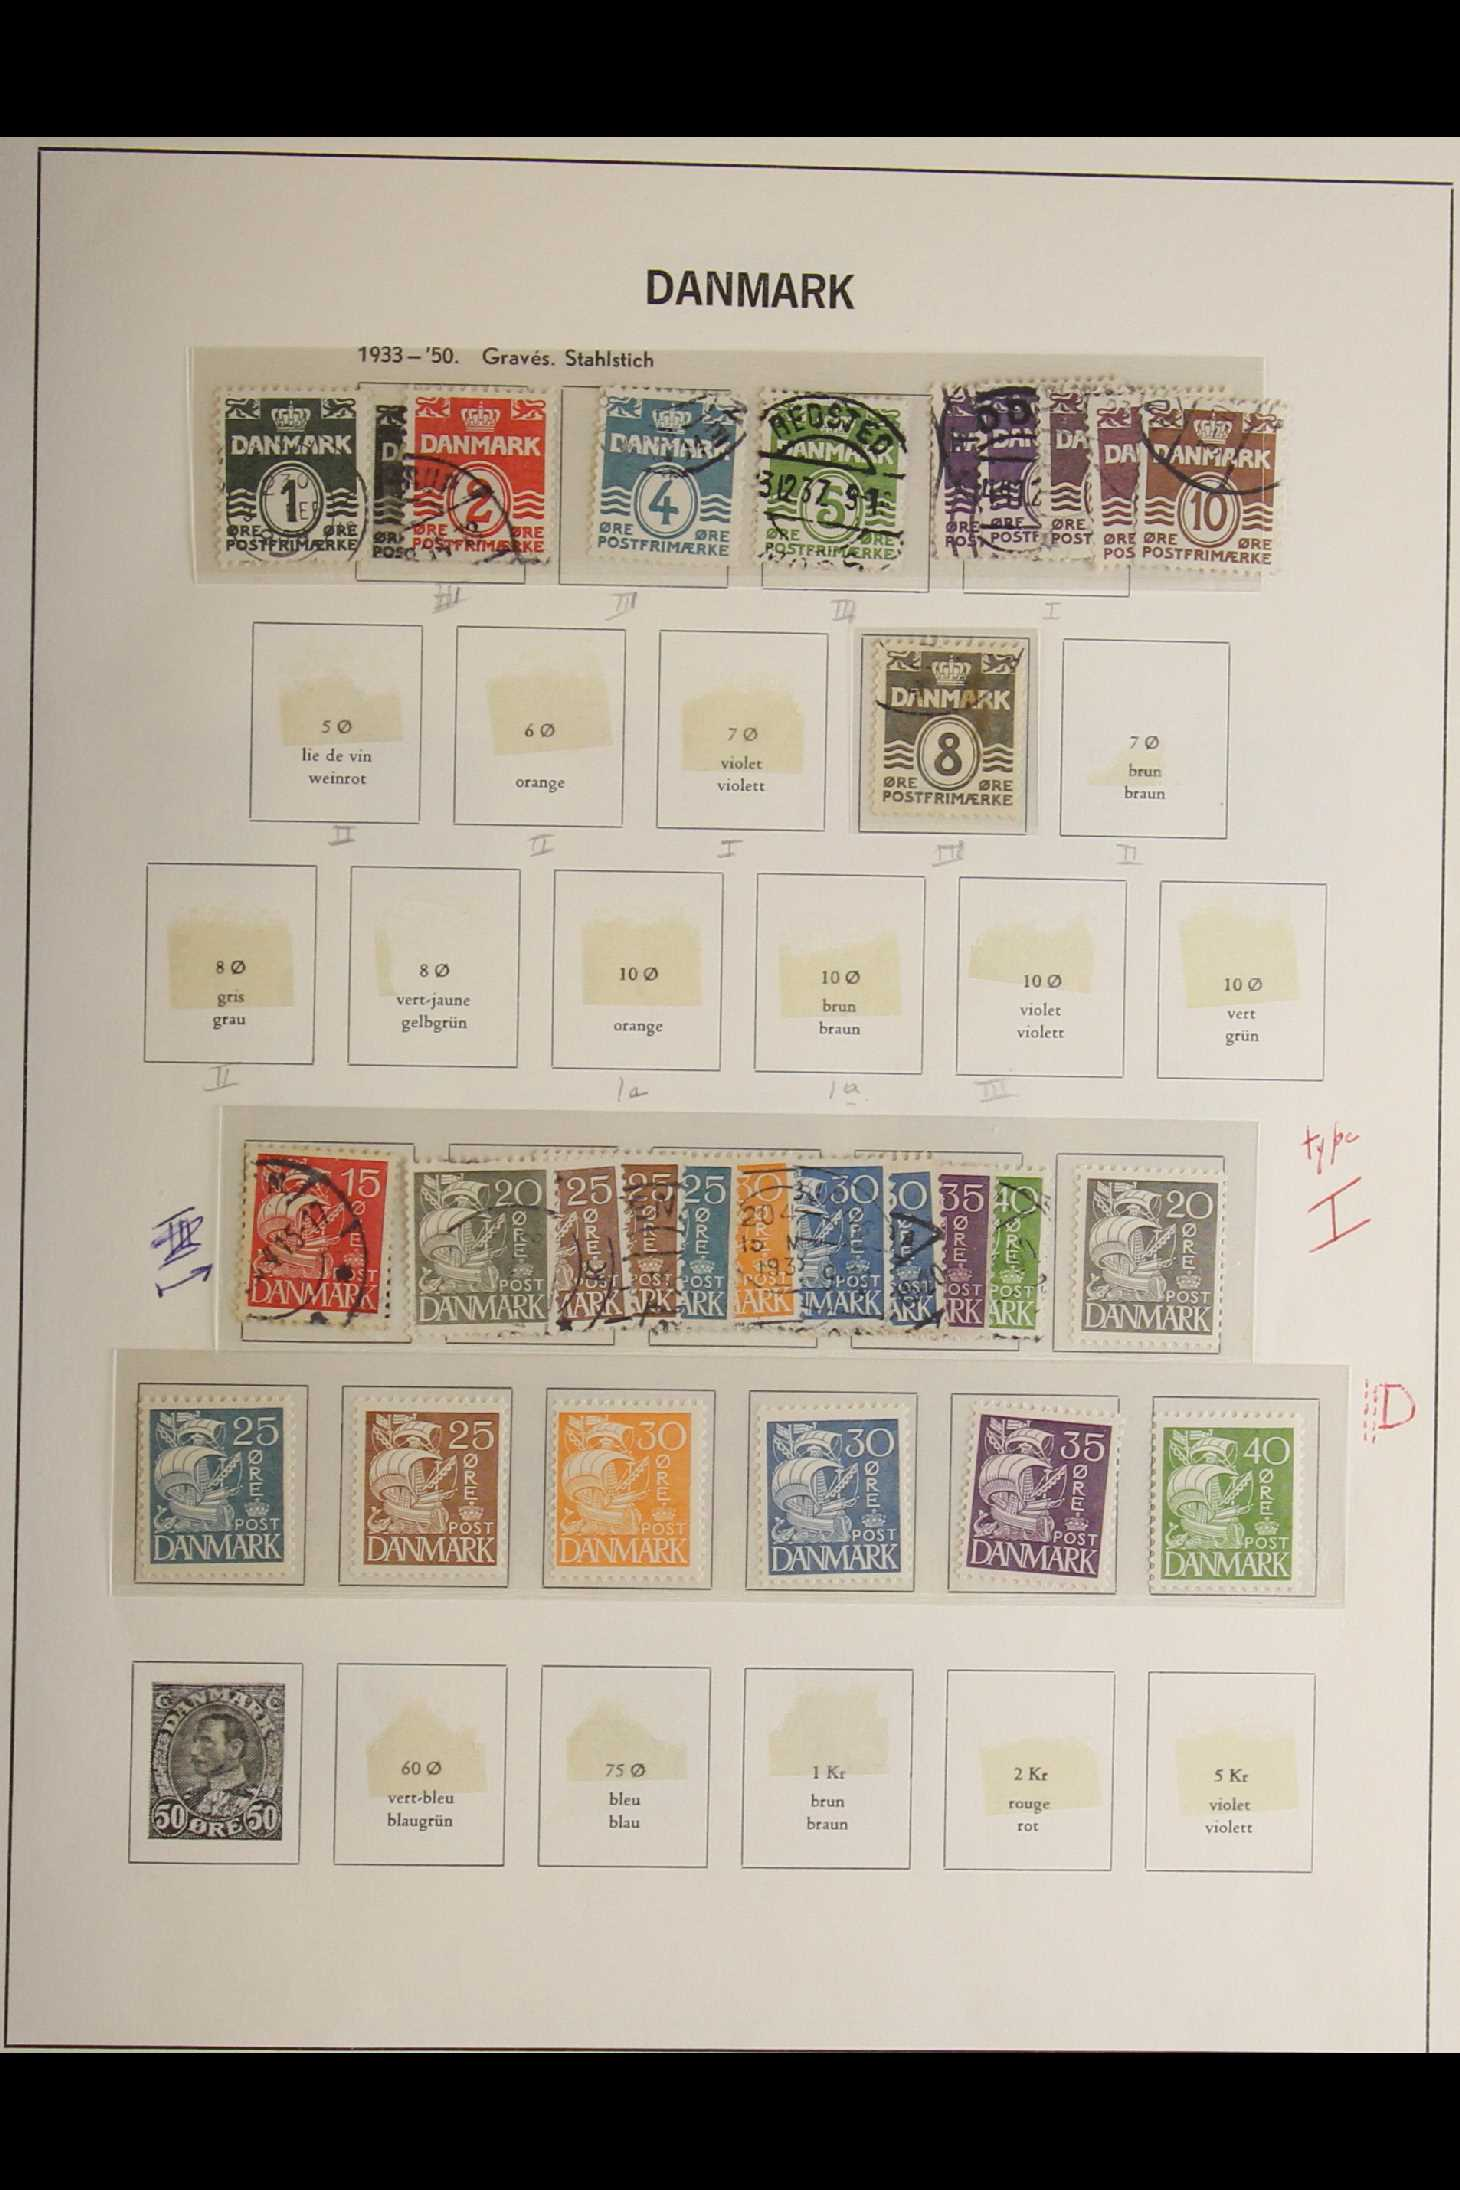 DENMARK 1882-1969 mint and used collection in an album incl. 1882 (small corner figures) 5 ore and - Image 2 of 15